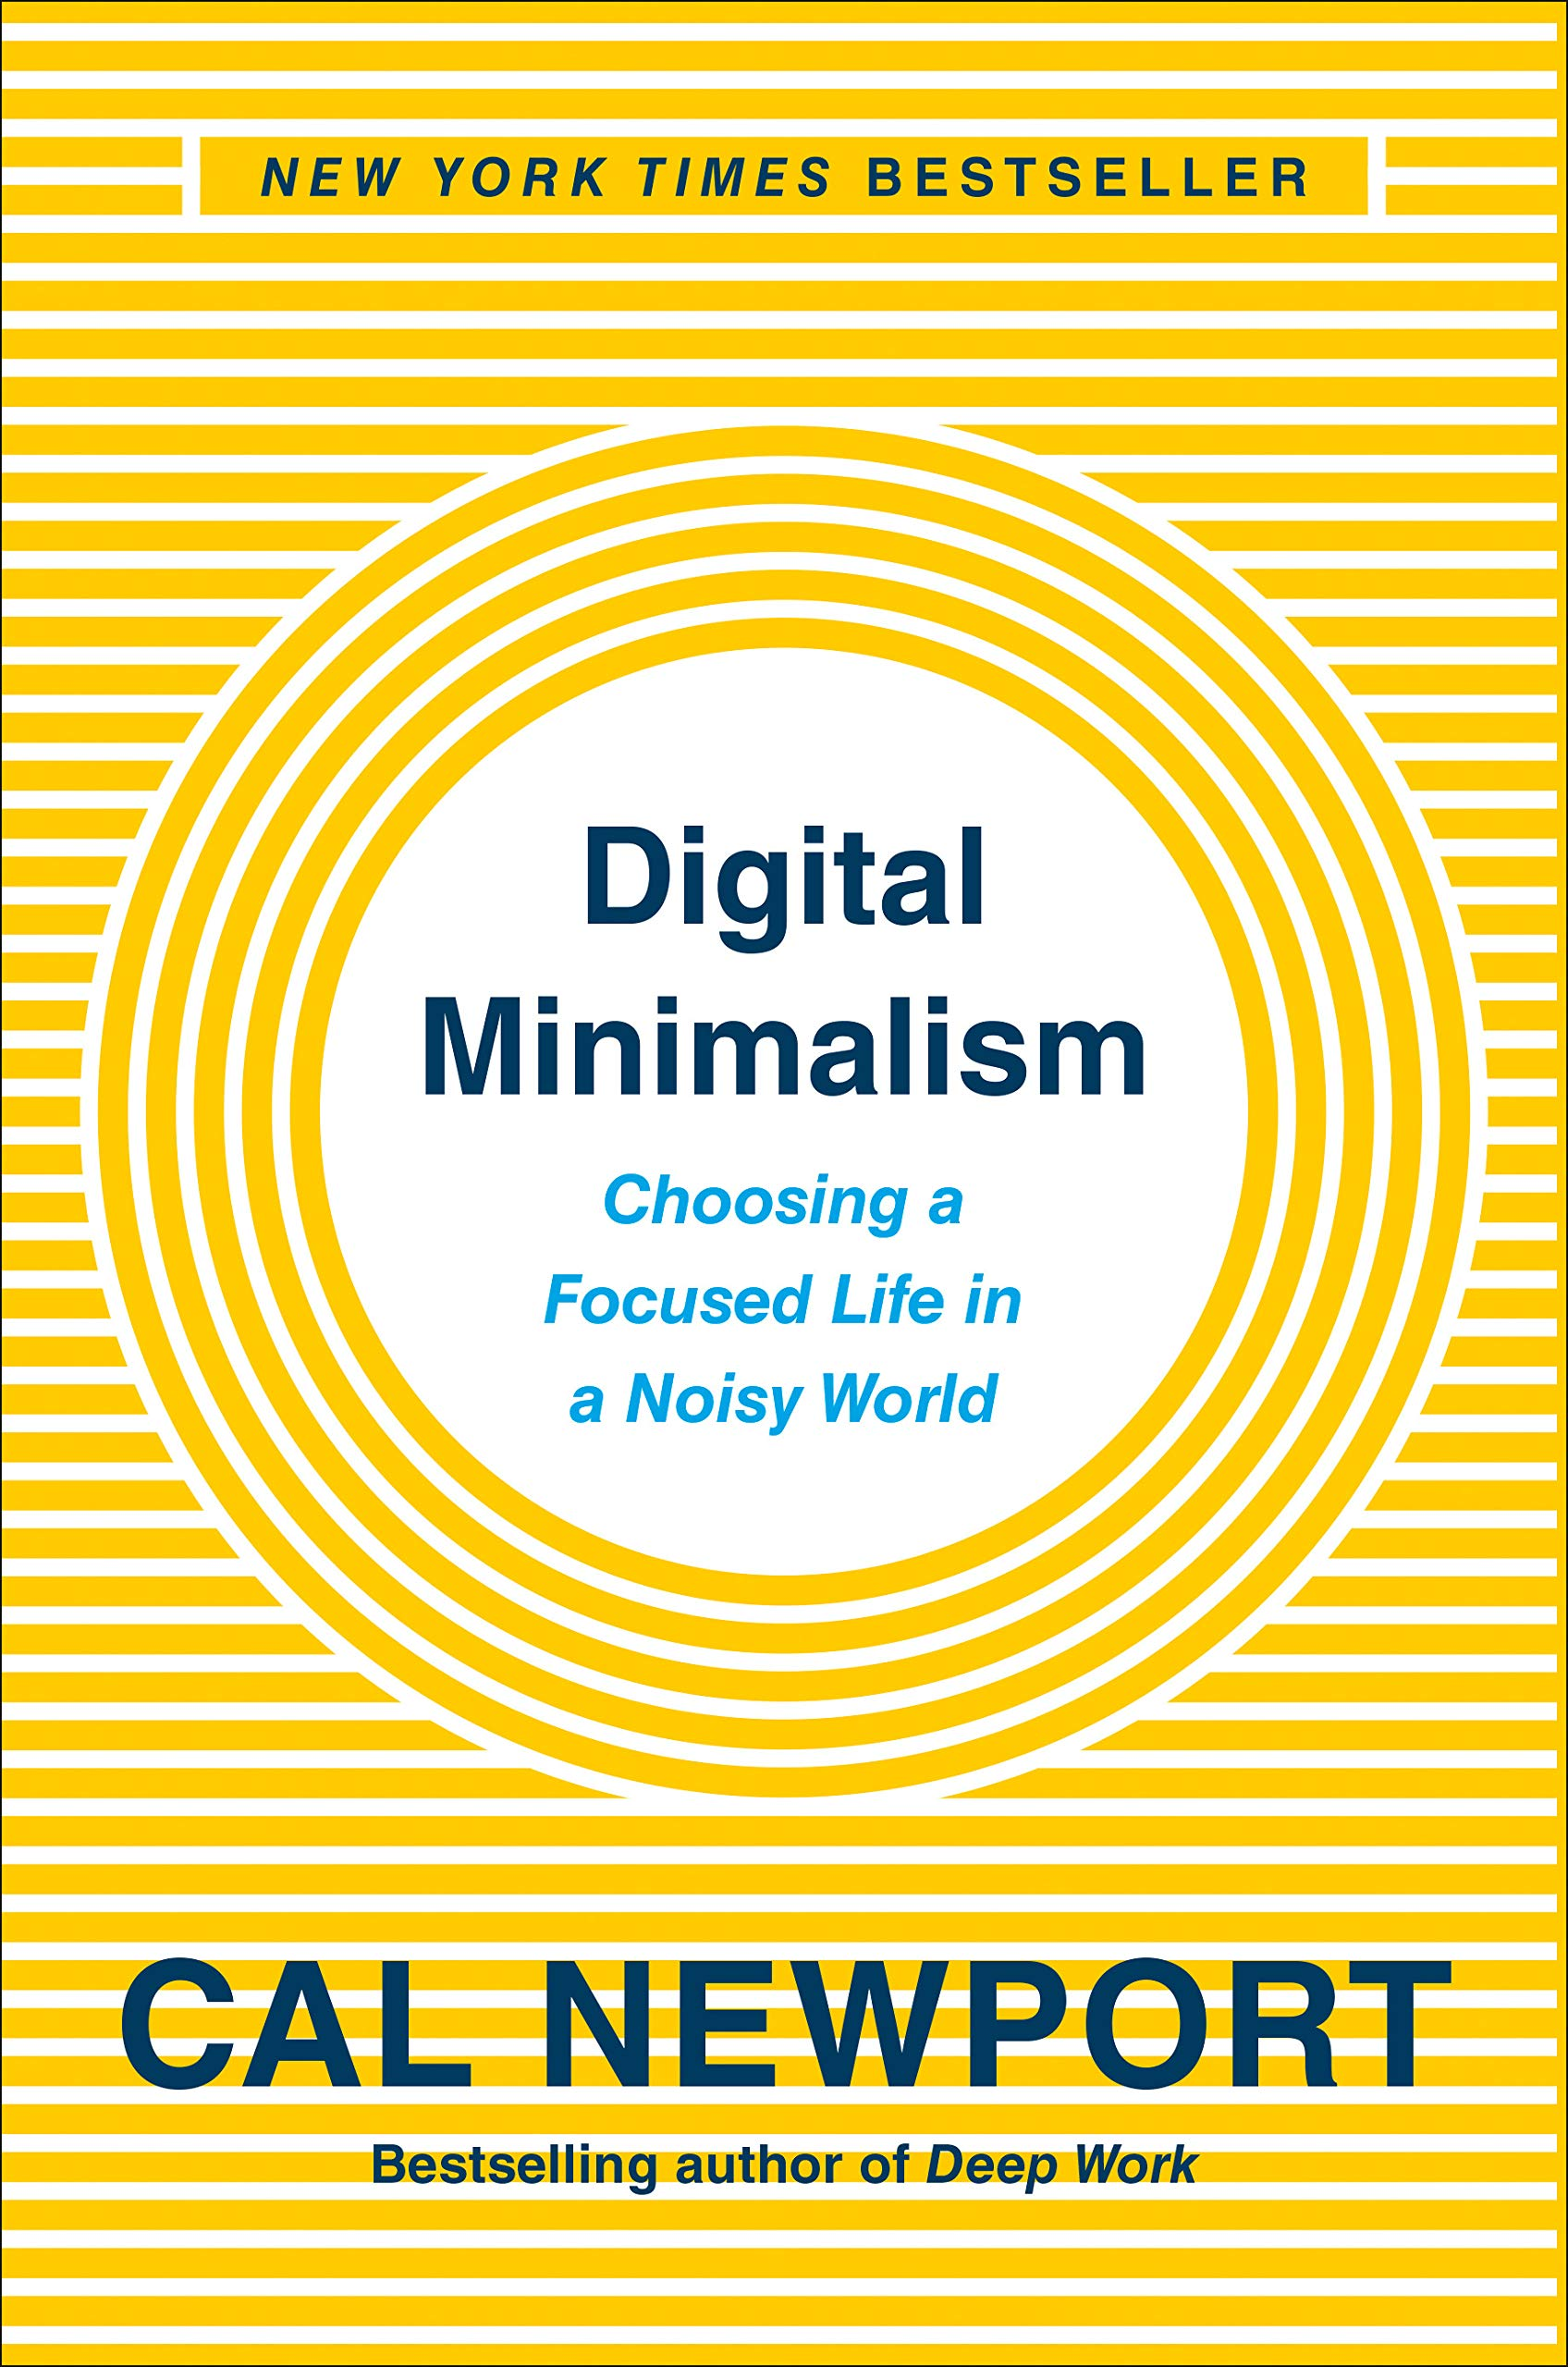 Digital Minimalism: Choosing a Focused Life in a Noisy World book cover